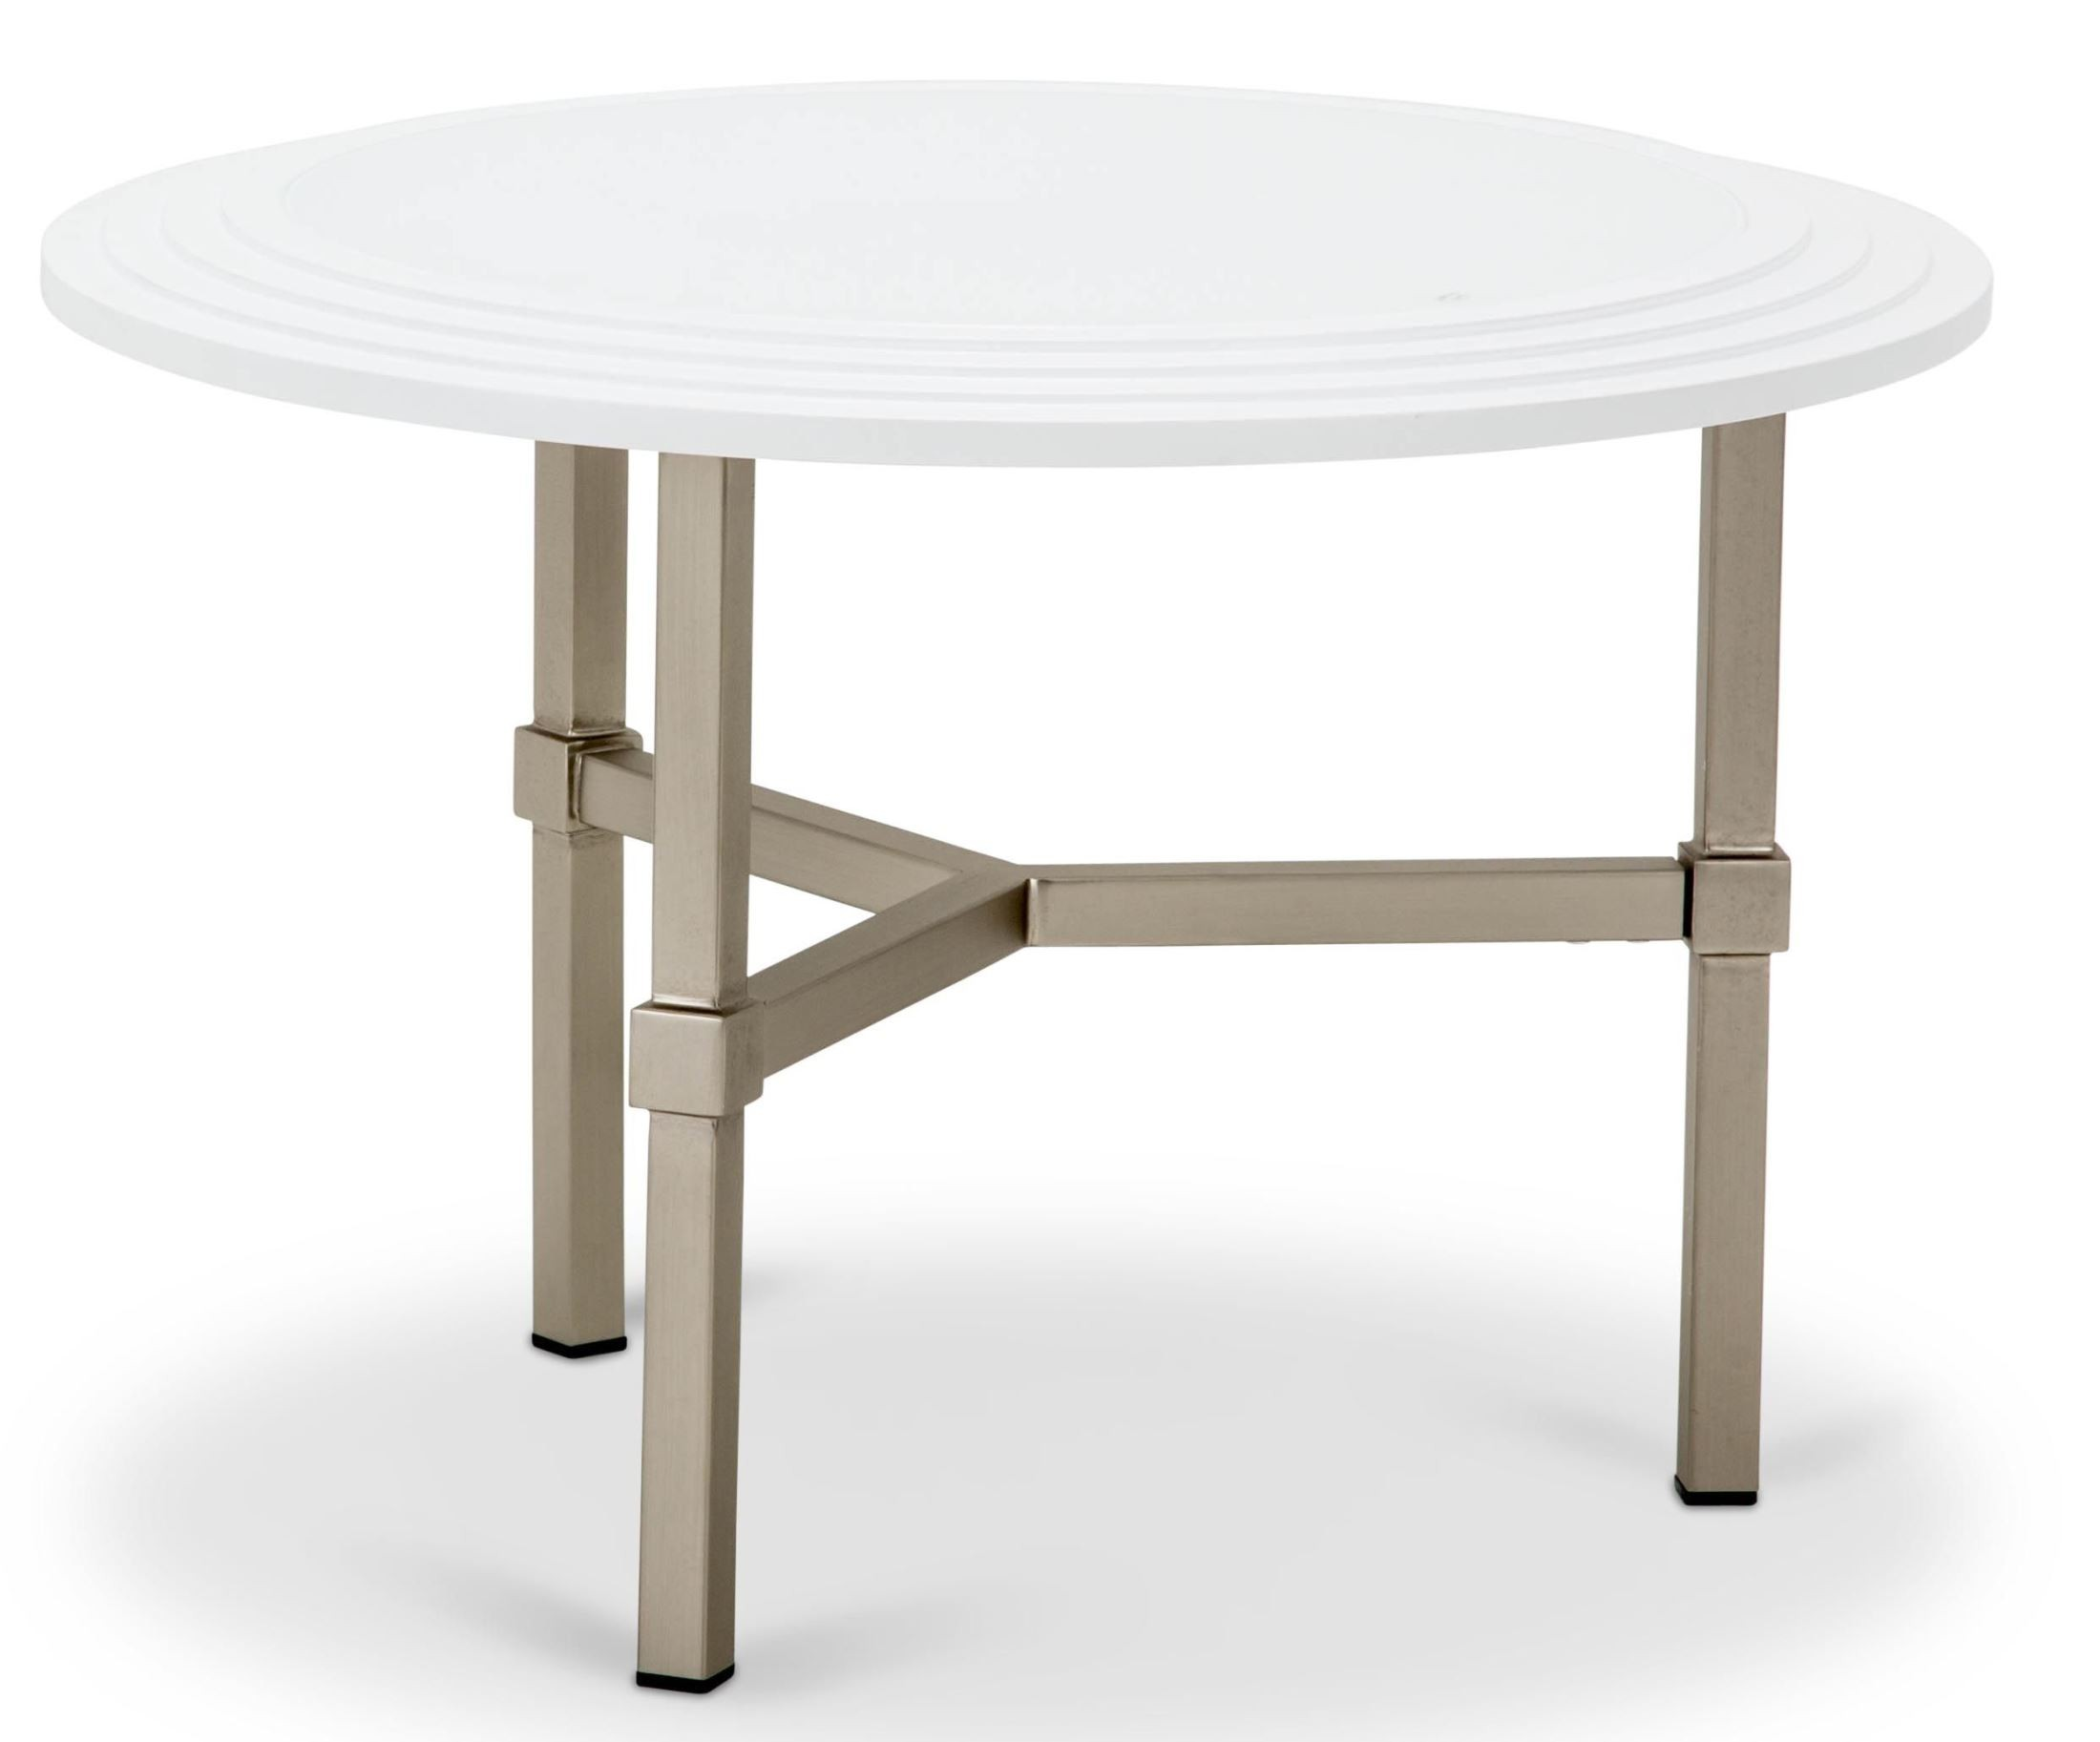 Trance vortex white round cocktail table tr vortx204w aico for Table th ou tr